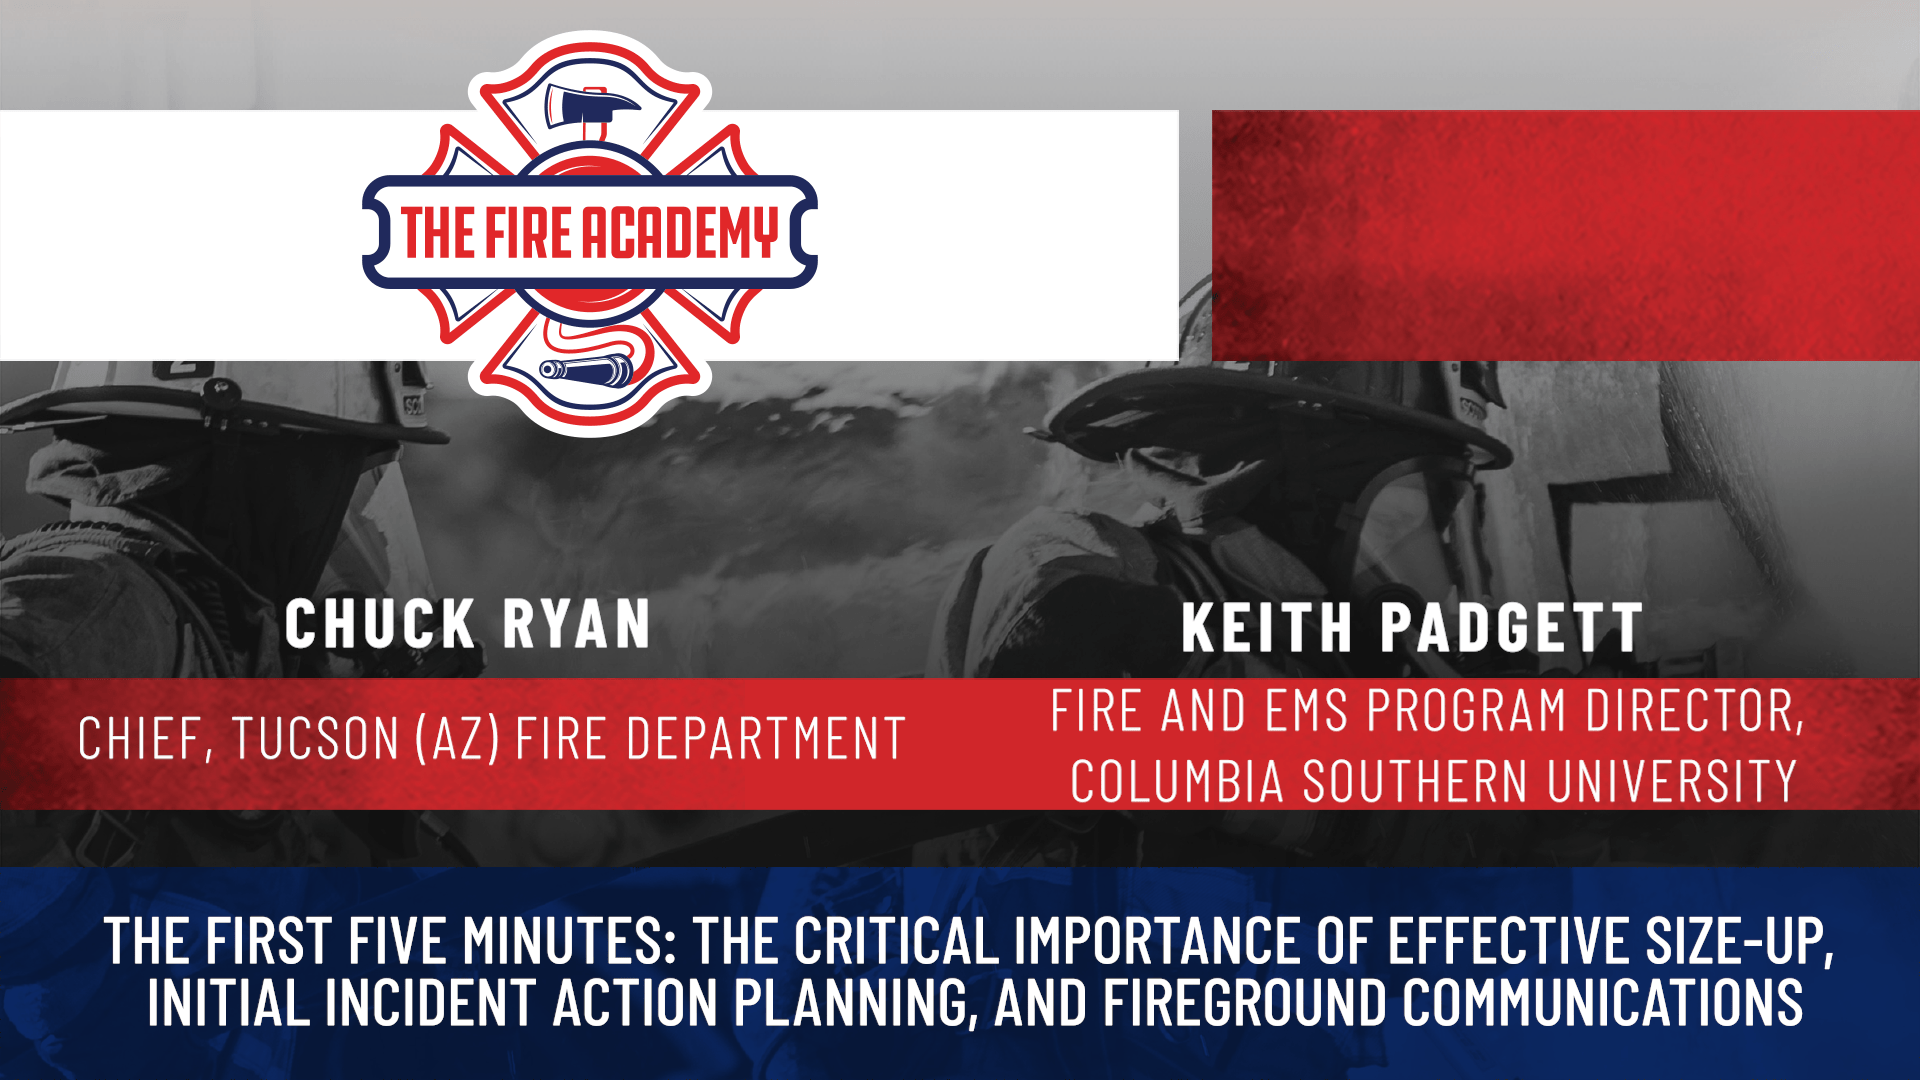 The First Five Minutes: The Critical Importance of Effective Size-Up, Initial Incident Action Planning, and Fireground Communications